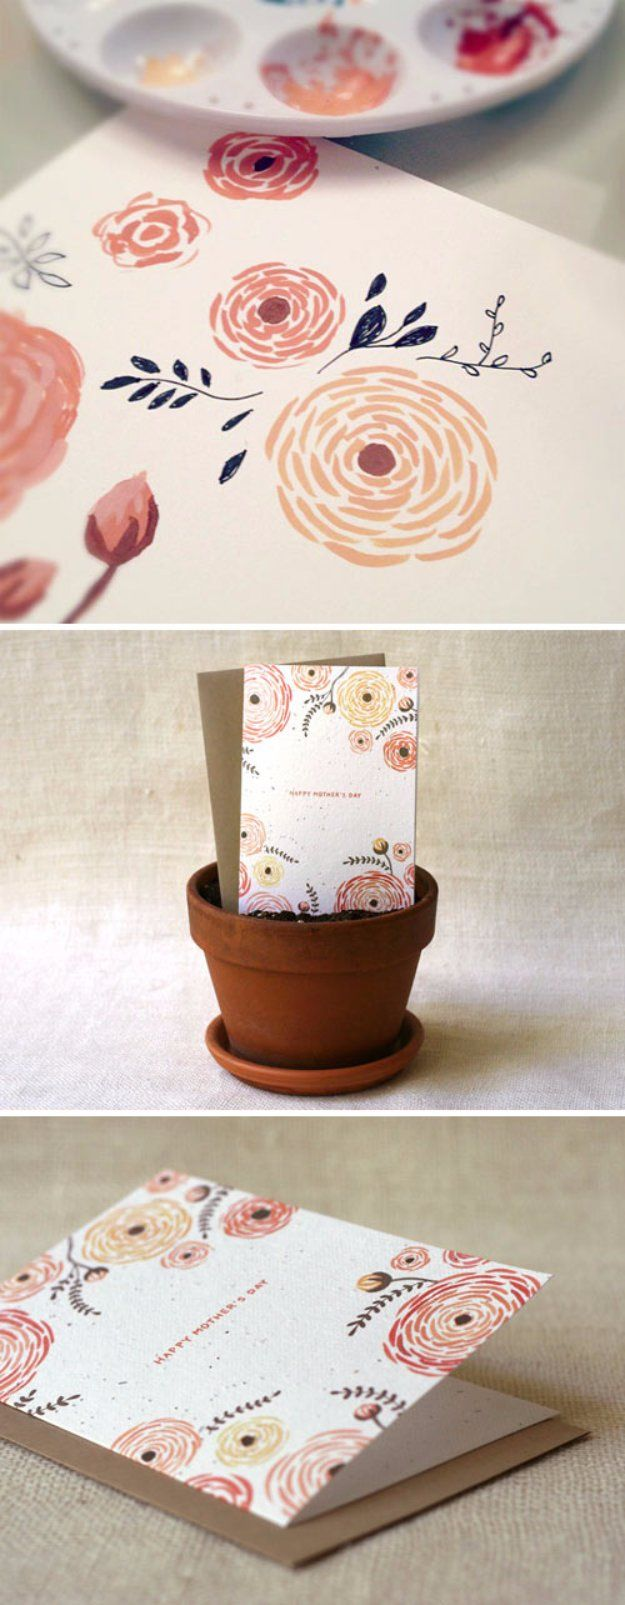 DIY Mothers Day Cards - DIY Bouquet Wildflower Seeds Embedded Card - Creative and Thoughtful Homemade Card Ideas for Mom - Step by Step Tutorials, Best Quotes, Handmade Projects http://diyjoy.com/diy-mothers-day-cards